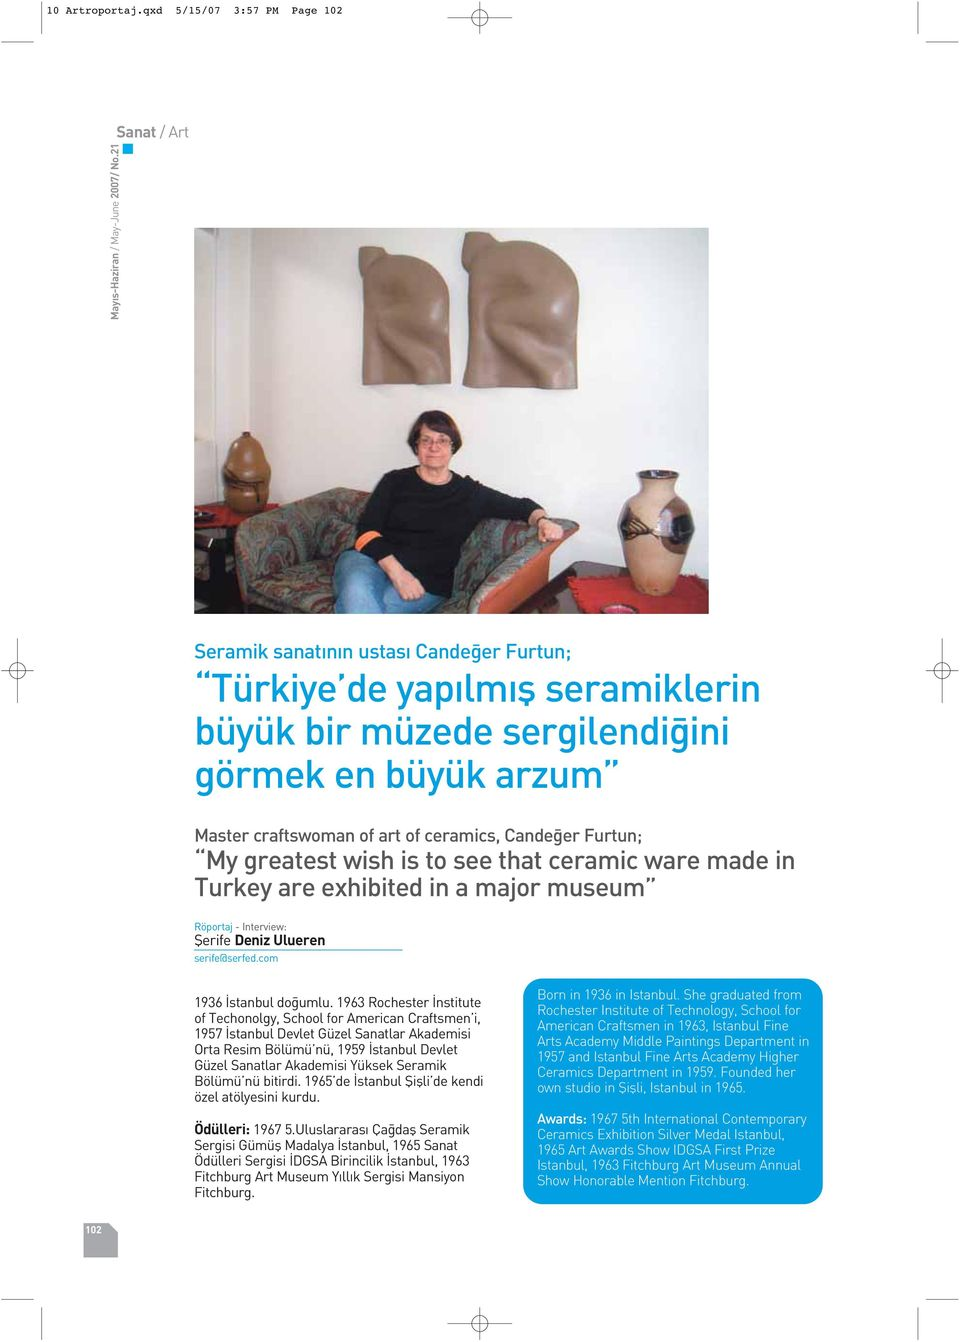 My greatest wish is to see that ceramic ware made in Turkey are exhibited in a major museum Röportaj - Interview: fierife Deniz Ulueren serife@serfed.com 1936 stanbul do umlu.